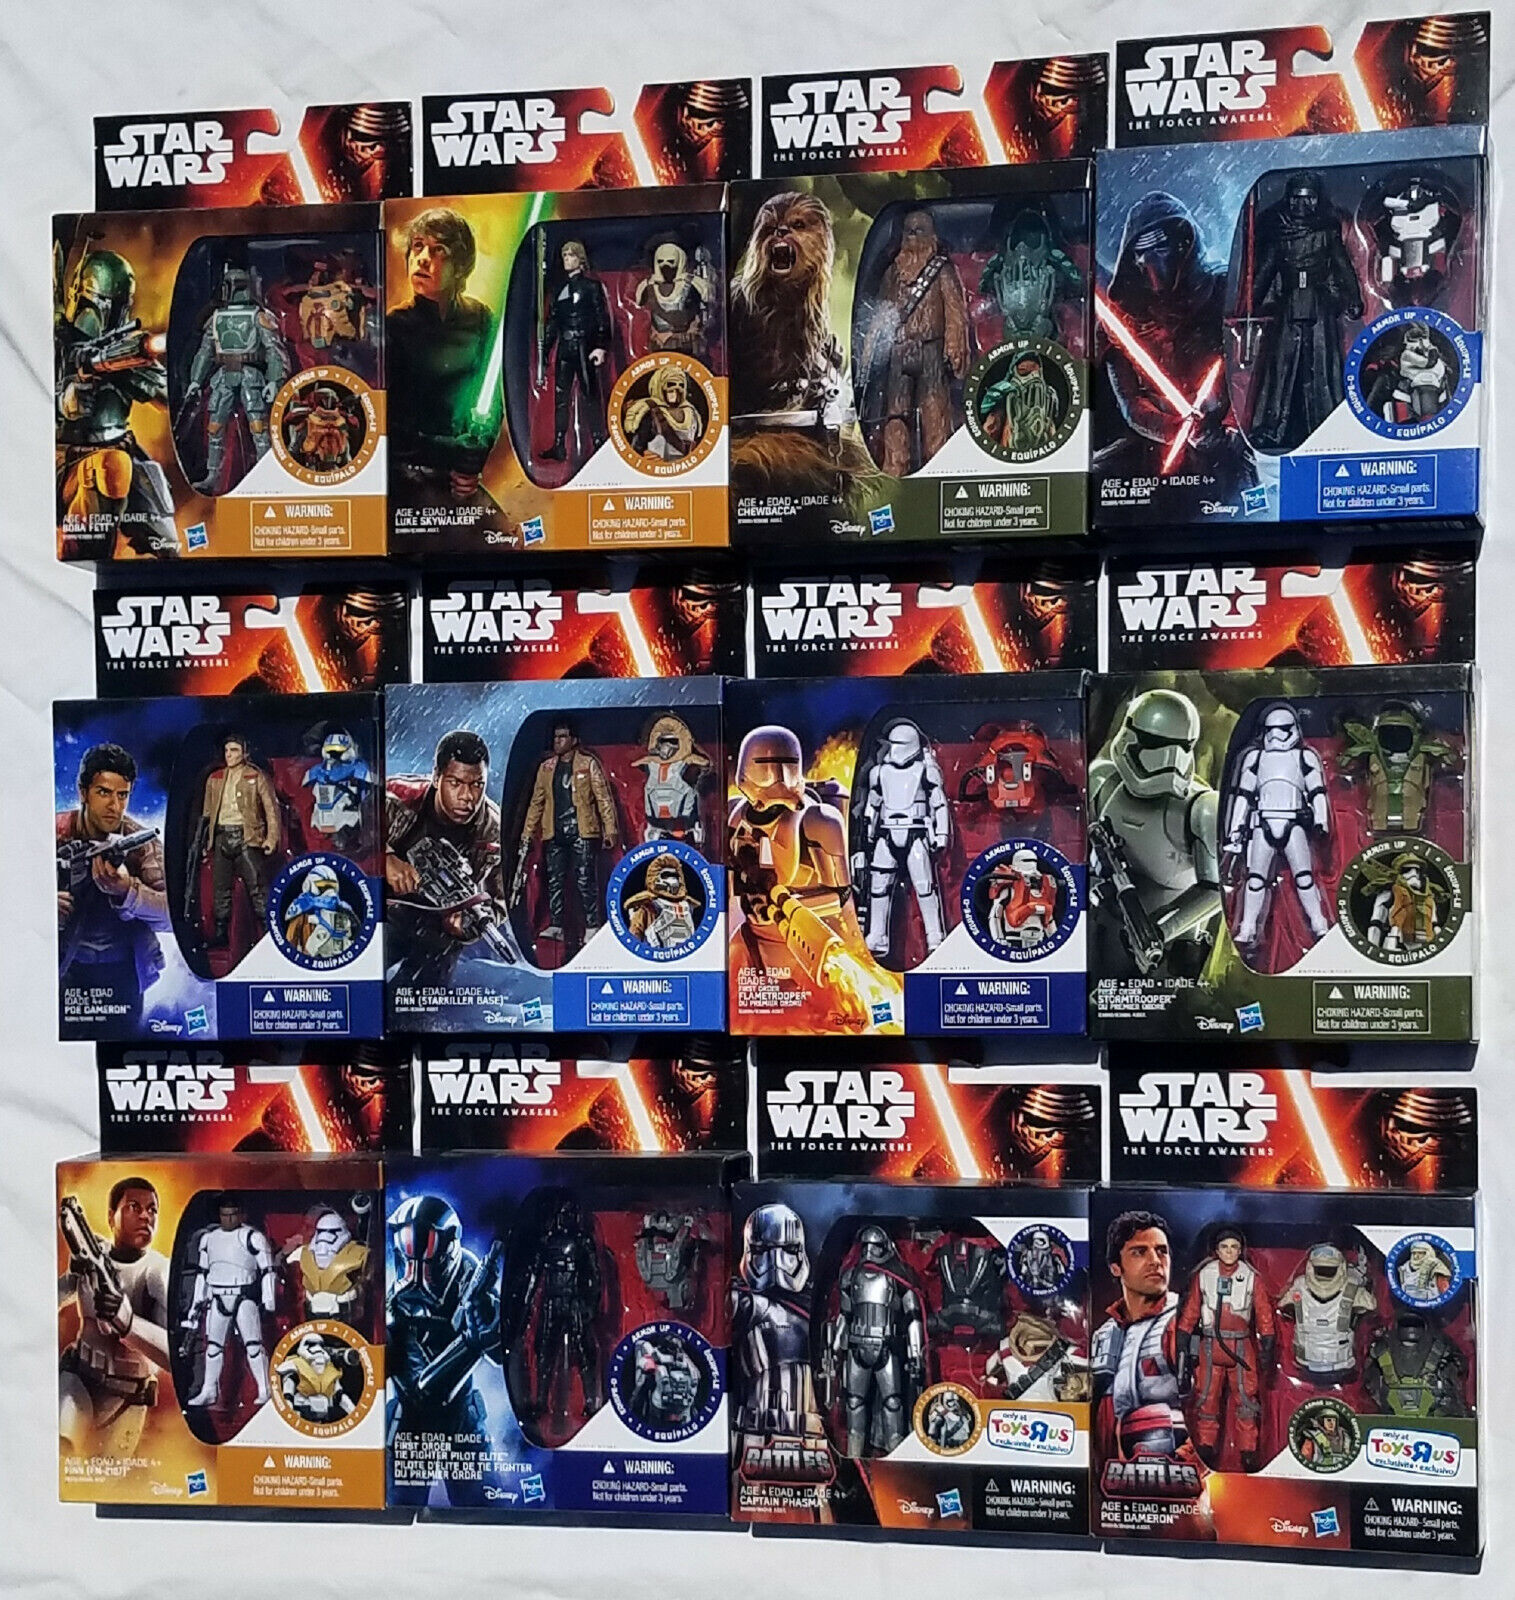 Star Wars Force Awakens Armor Up Action Figures Complete Set With Two Exclusives